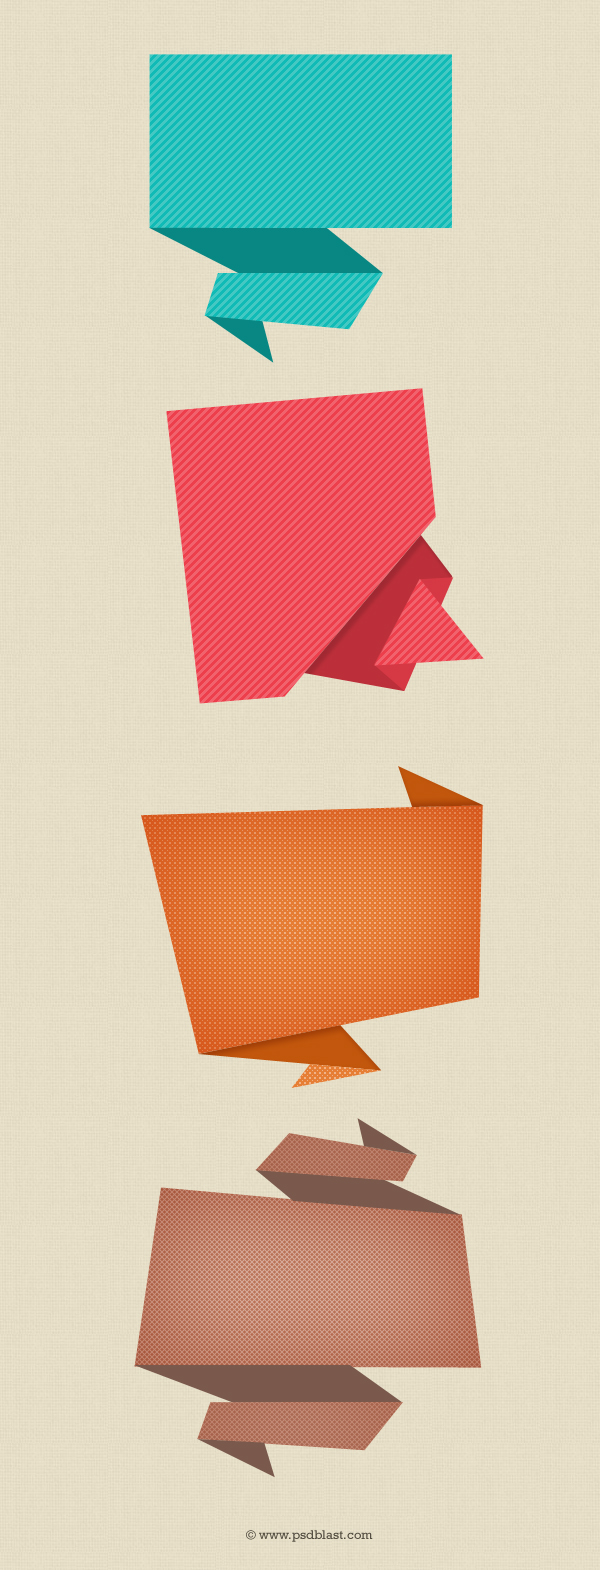 Abstract origami speech bubble design template